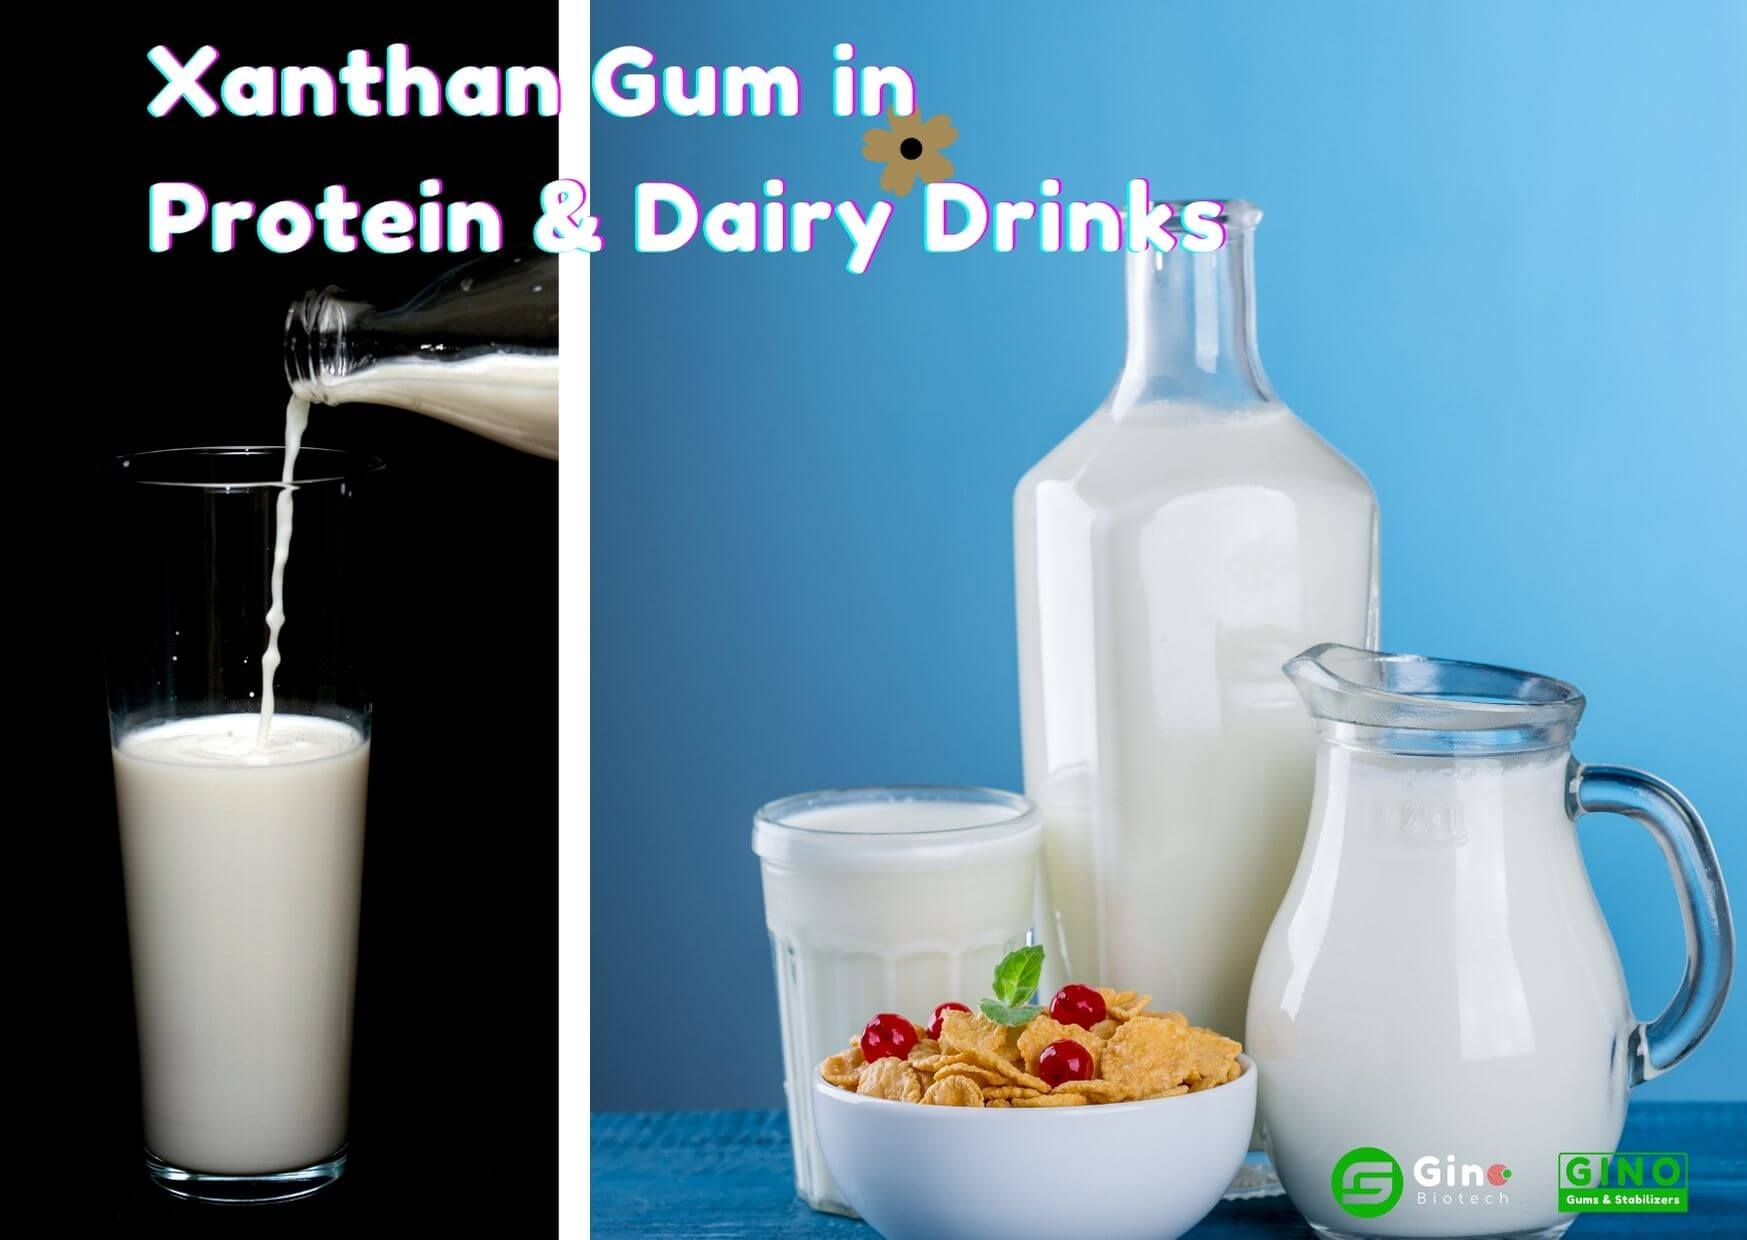 xanthan gum in drinks